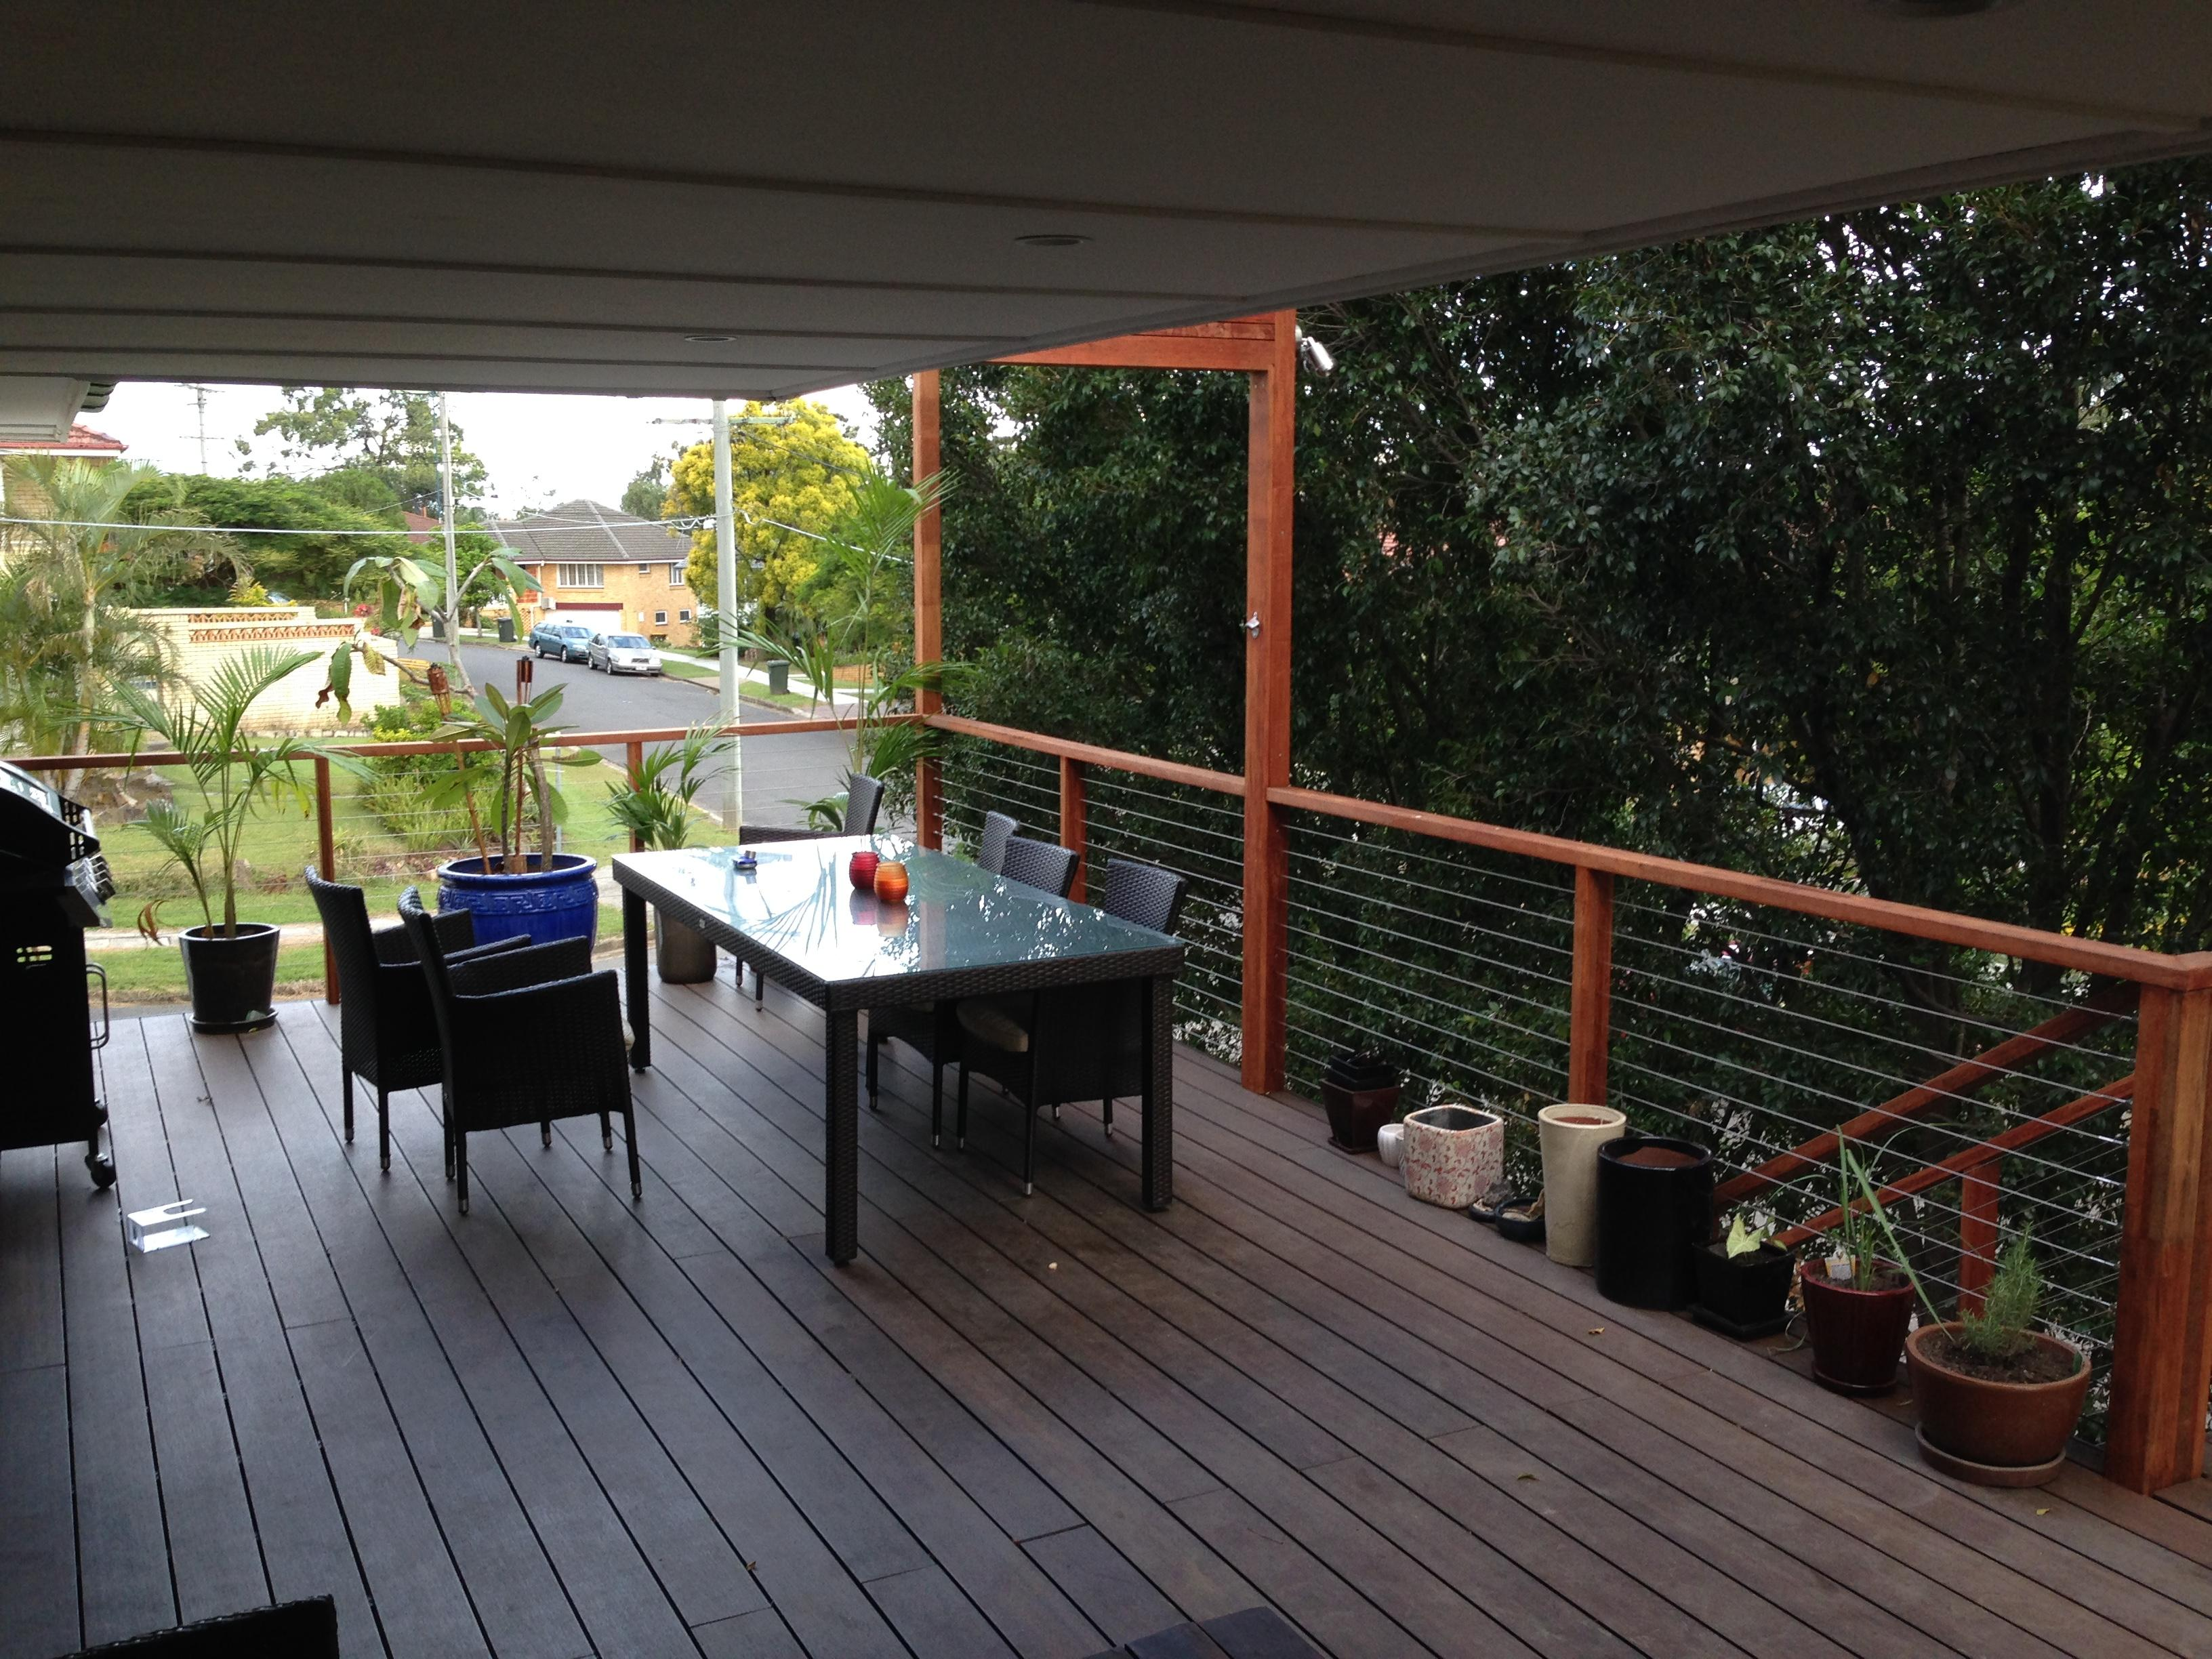 New Deck at Chermside Project - Bishop Construction Services